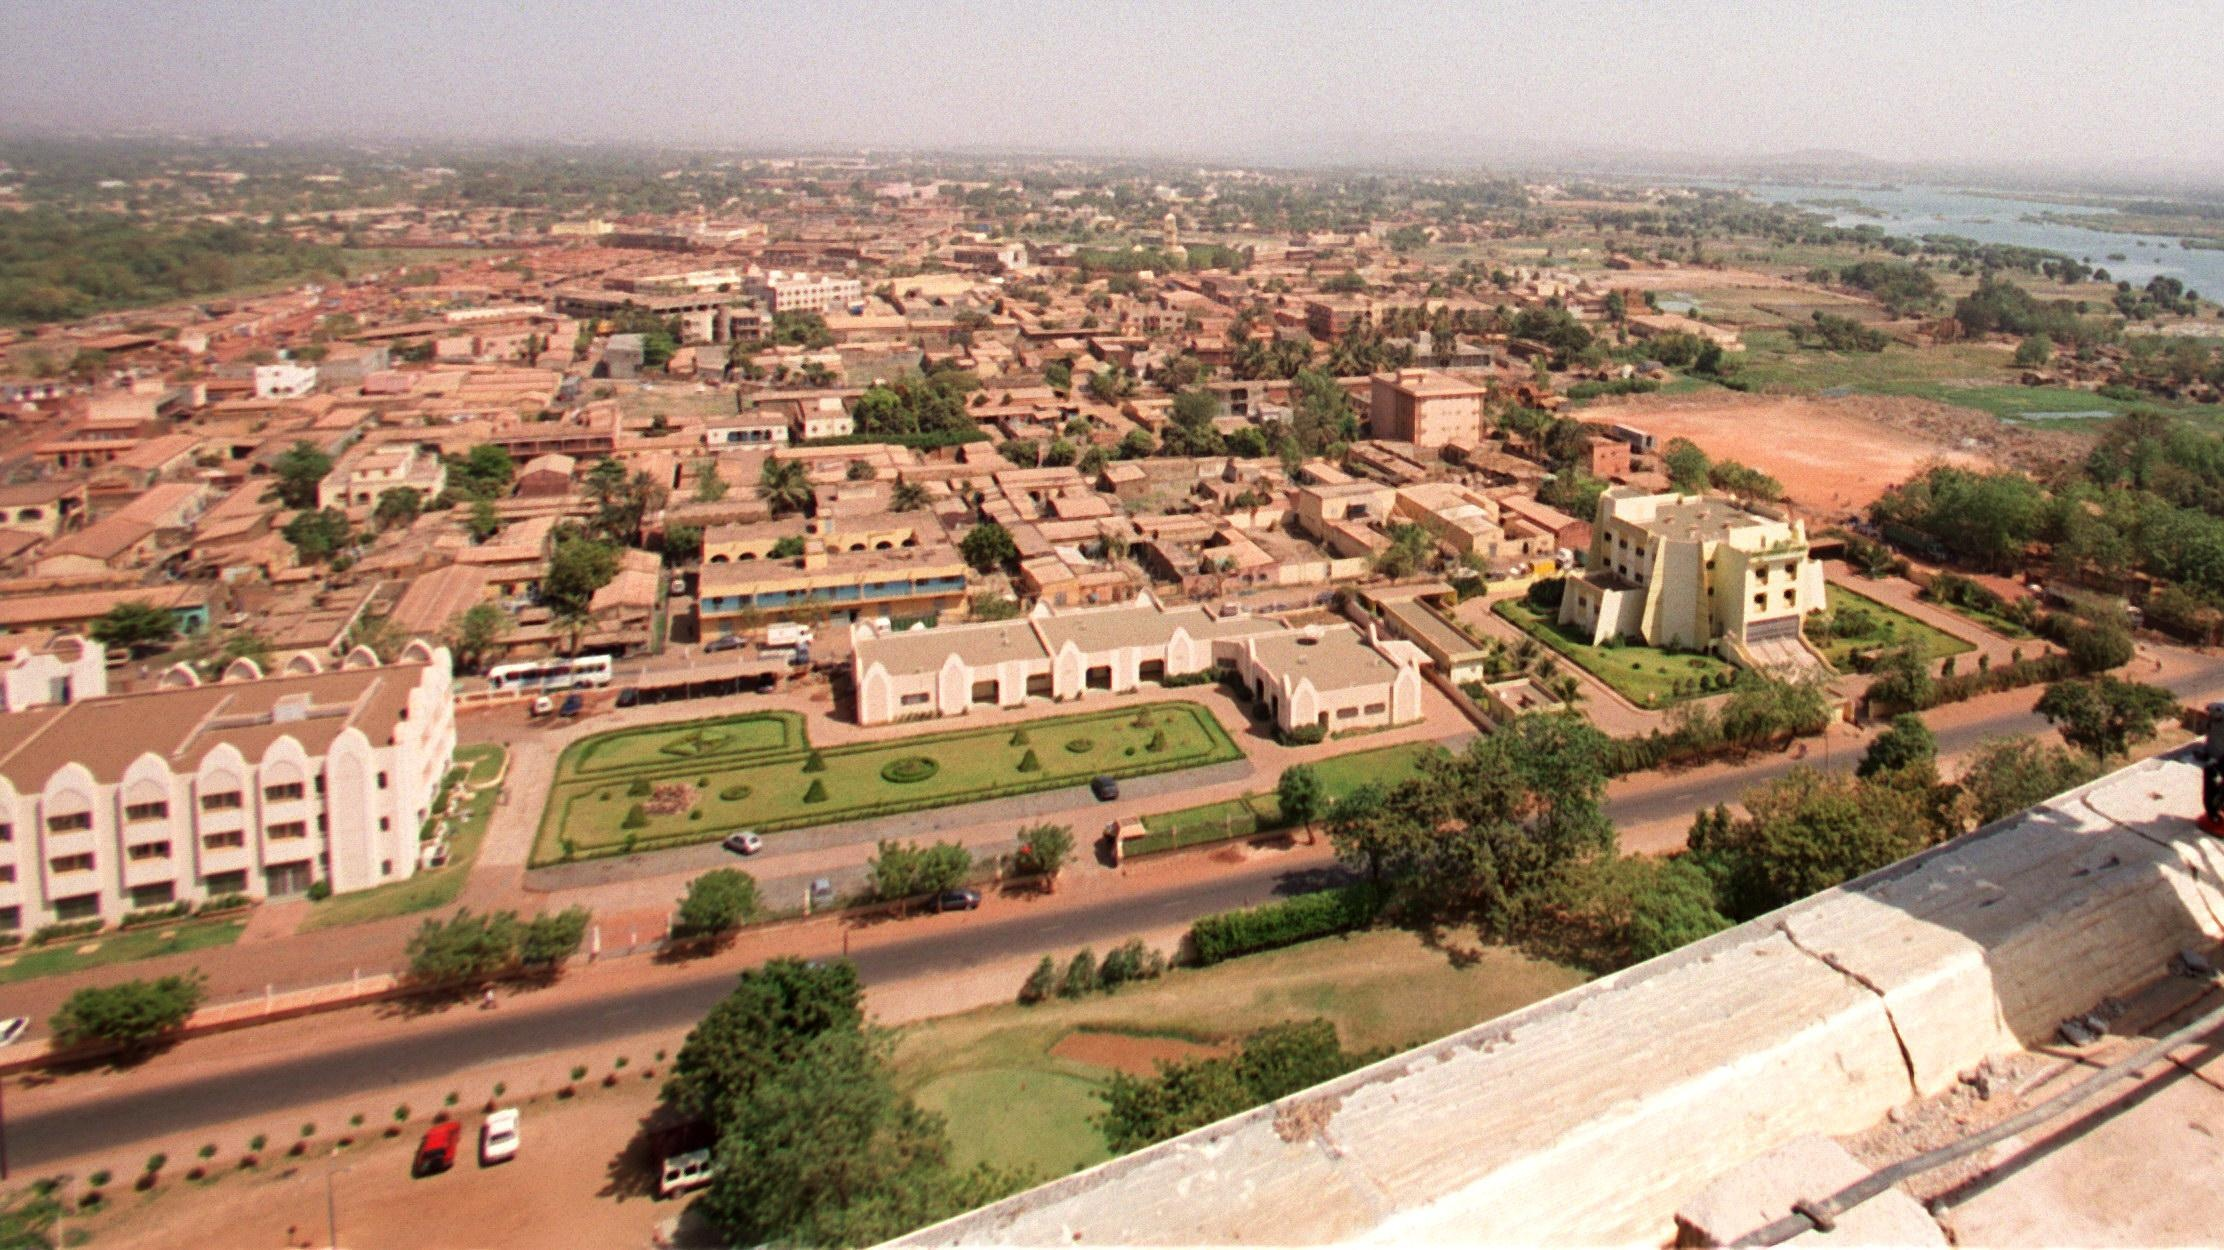 Gunfire at Mali resort area popular with foreigners